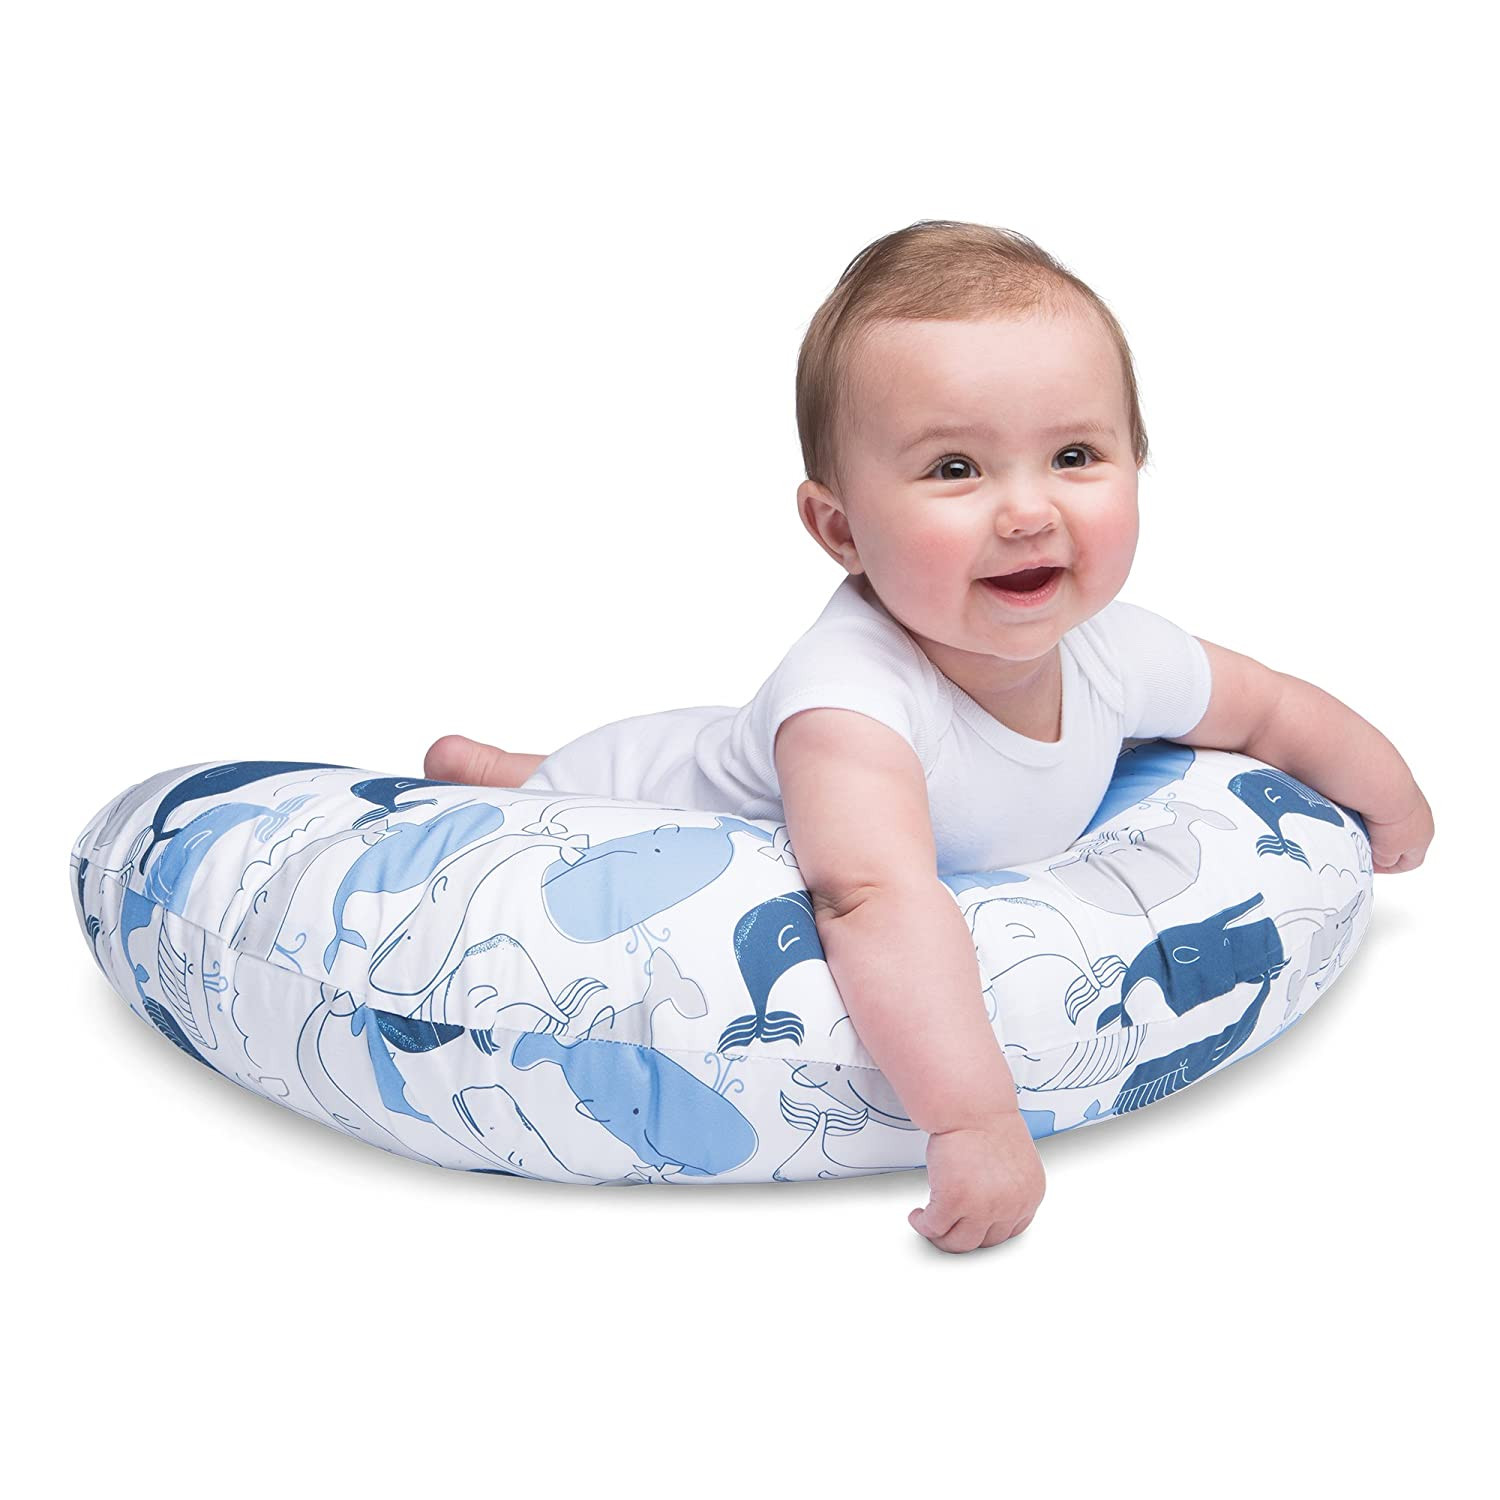 Blue Boppy Nursing Pillow and Positioner Big Whales